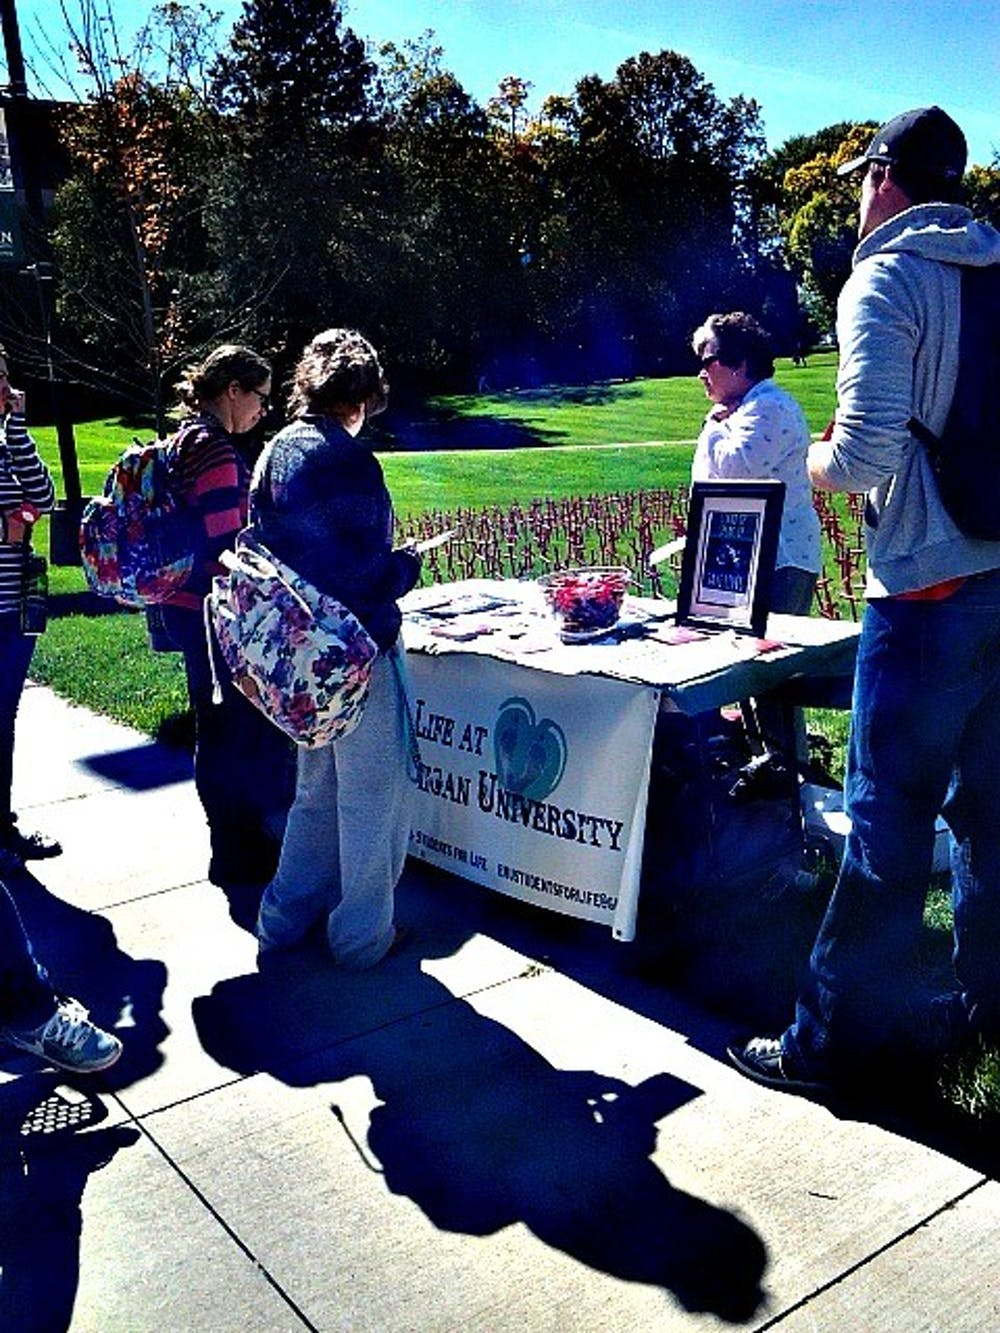 Students for Life's Planned Parenthood Project comes to EMU